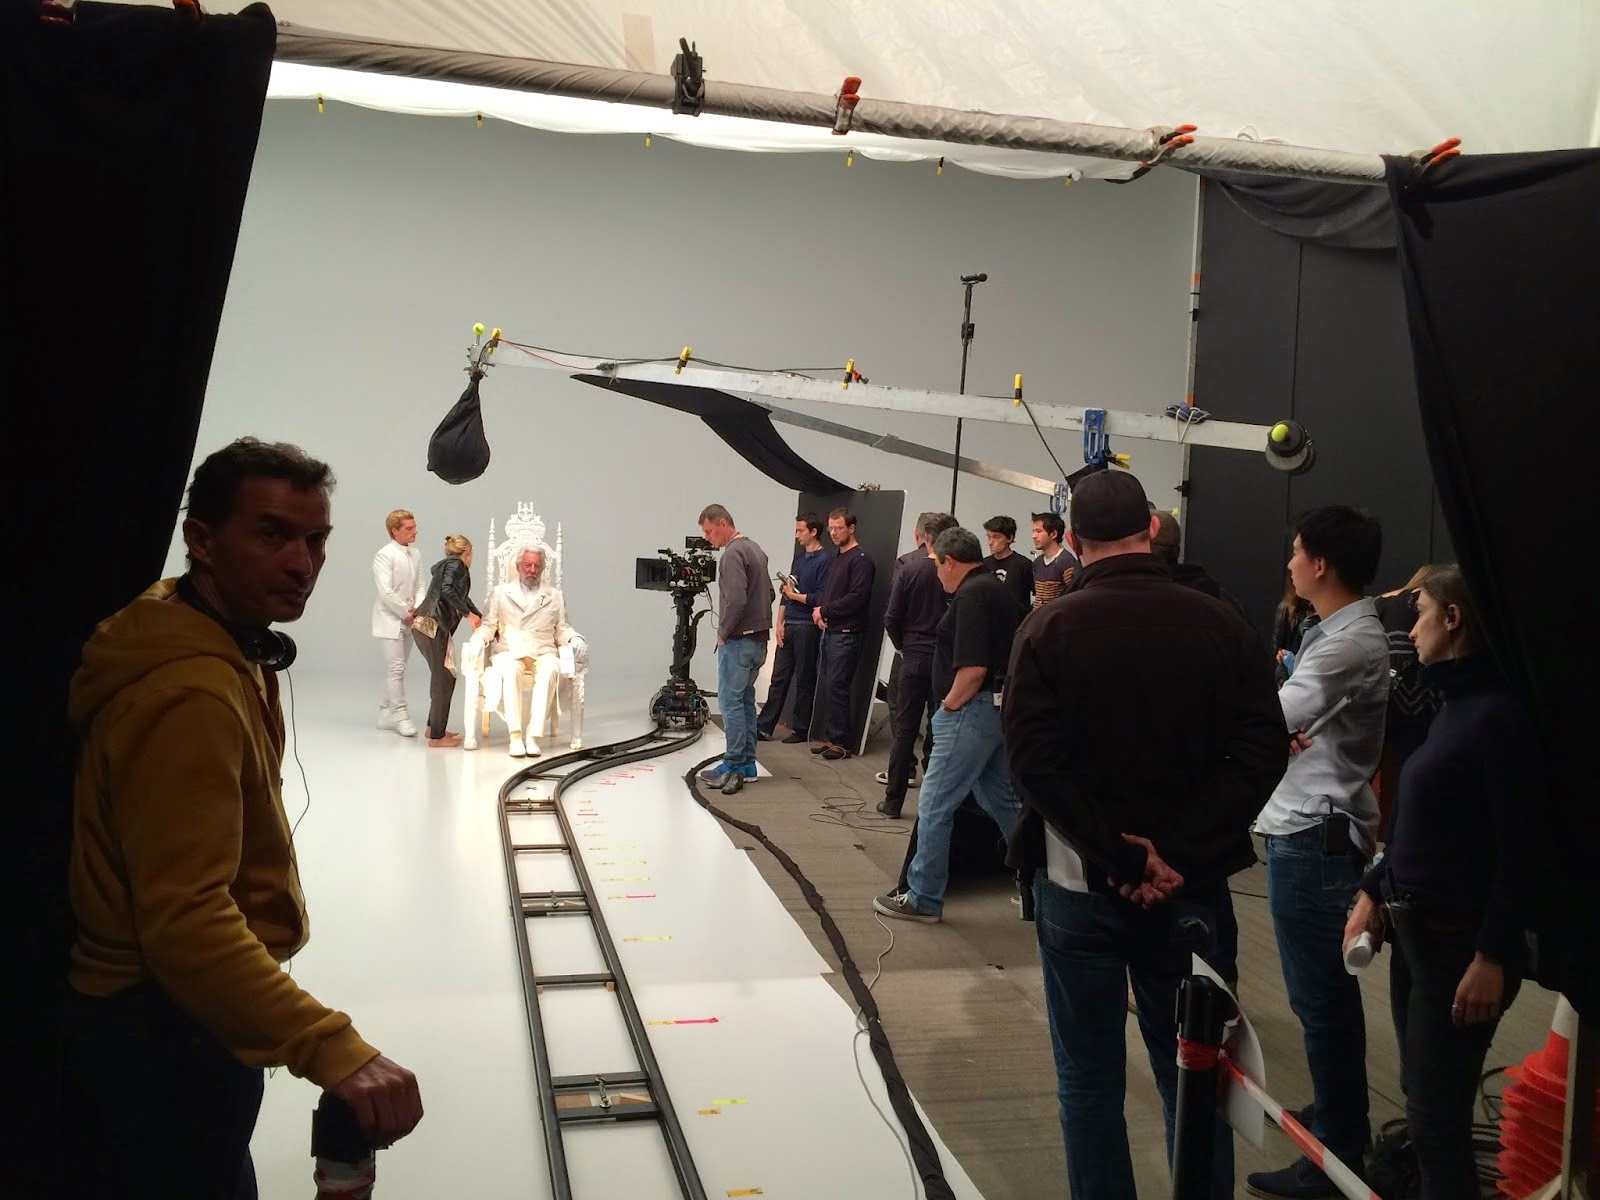 Mockingjay Part 1 Teaser Trailer Behind-the-scenes